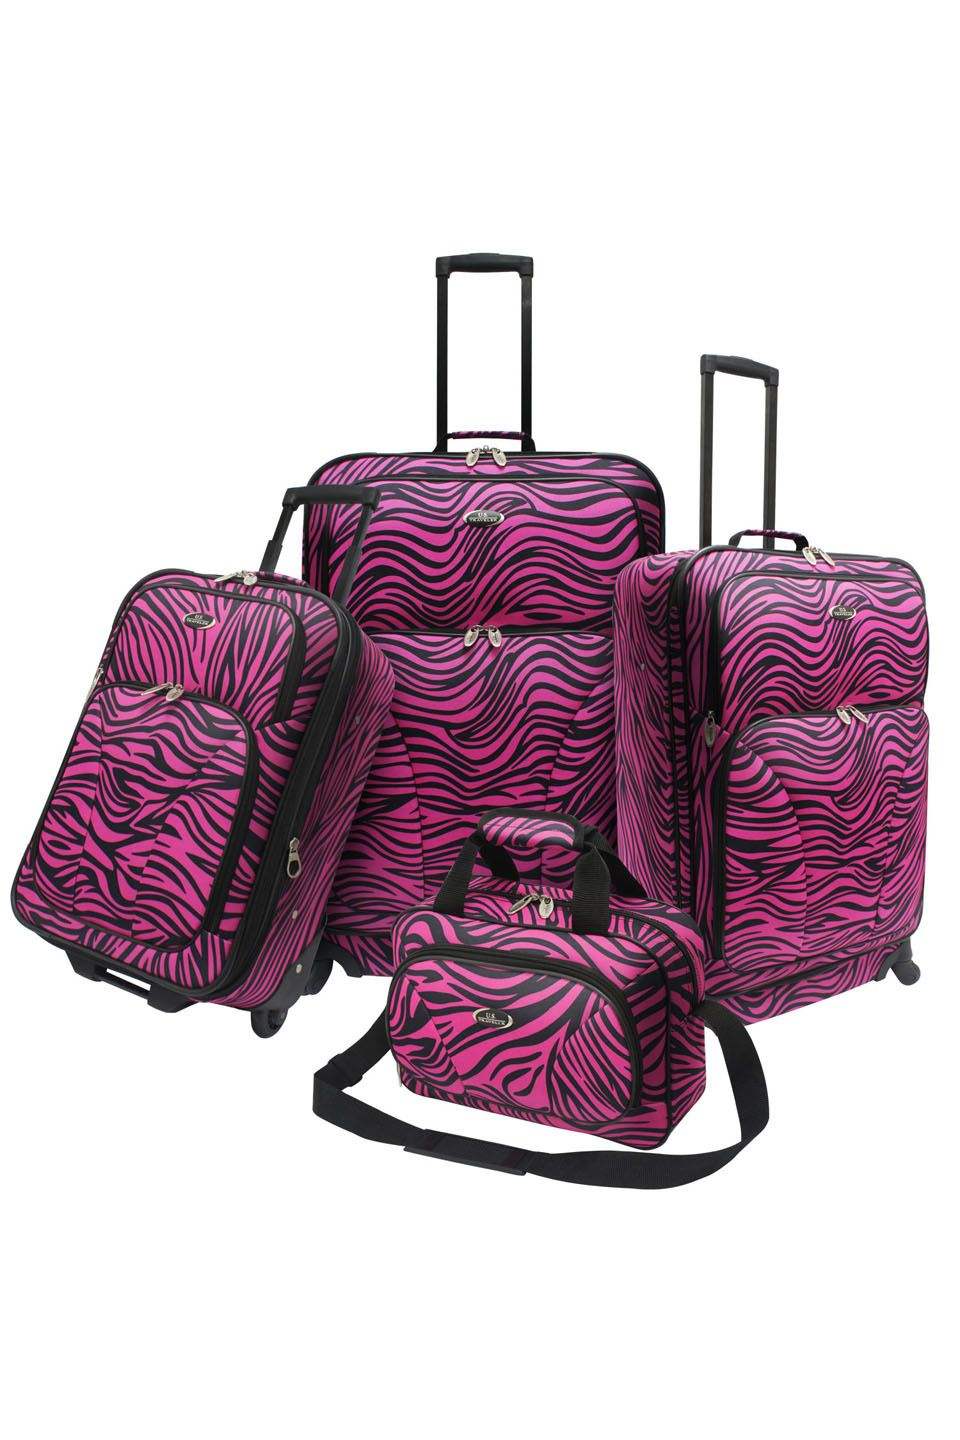 Traveler's Choice Four-Piece Fashion Spinner Luggage Set In Pink Zebra.